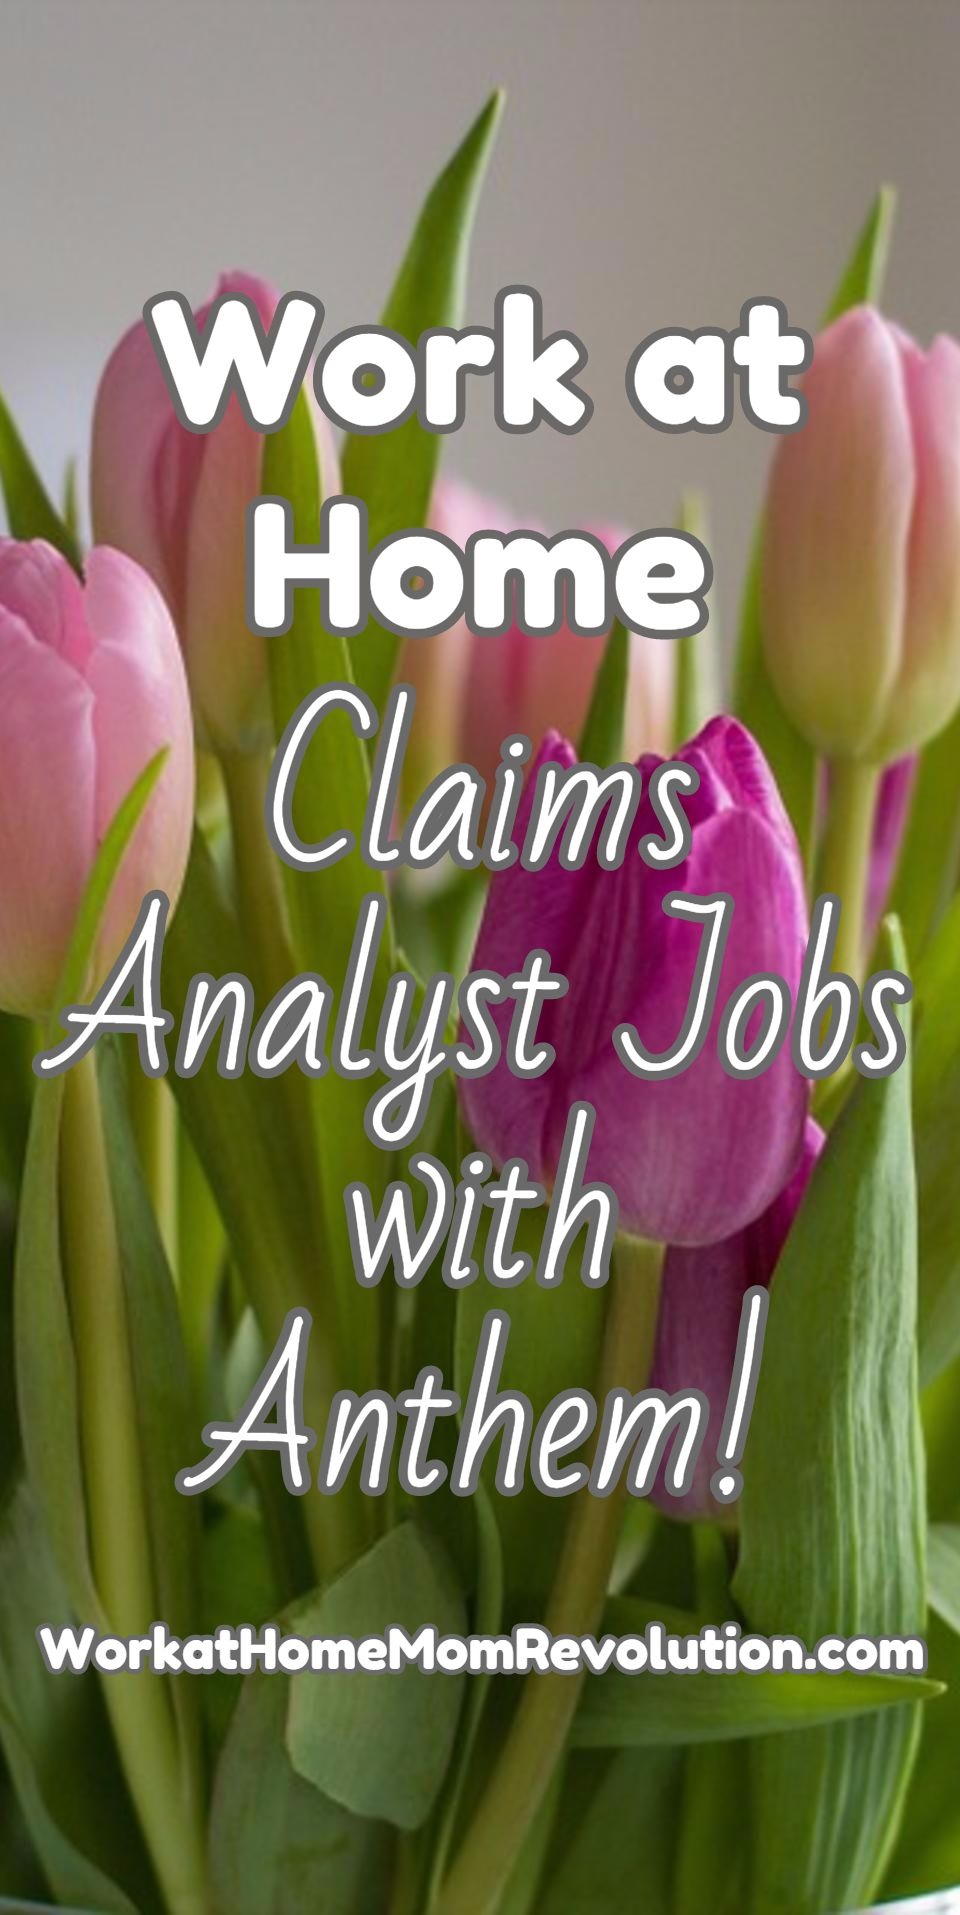 HomeBased Claims Analyst Jobs with Anthem Inc. Work